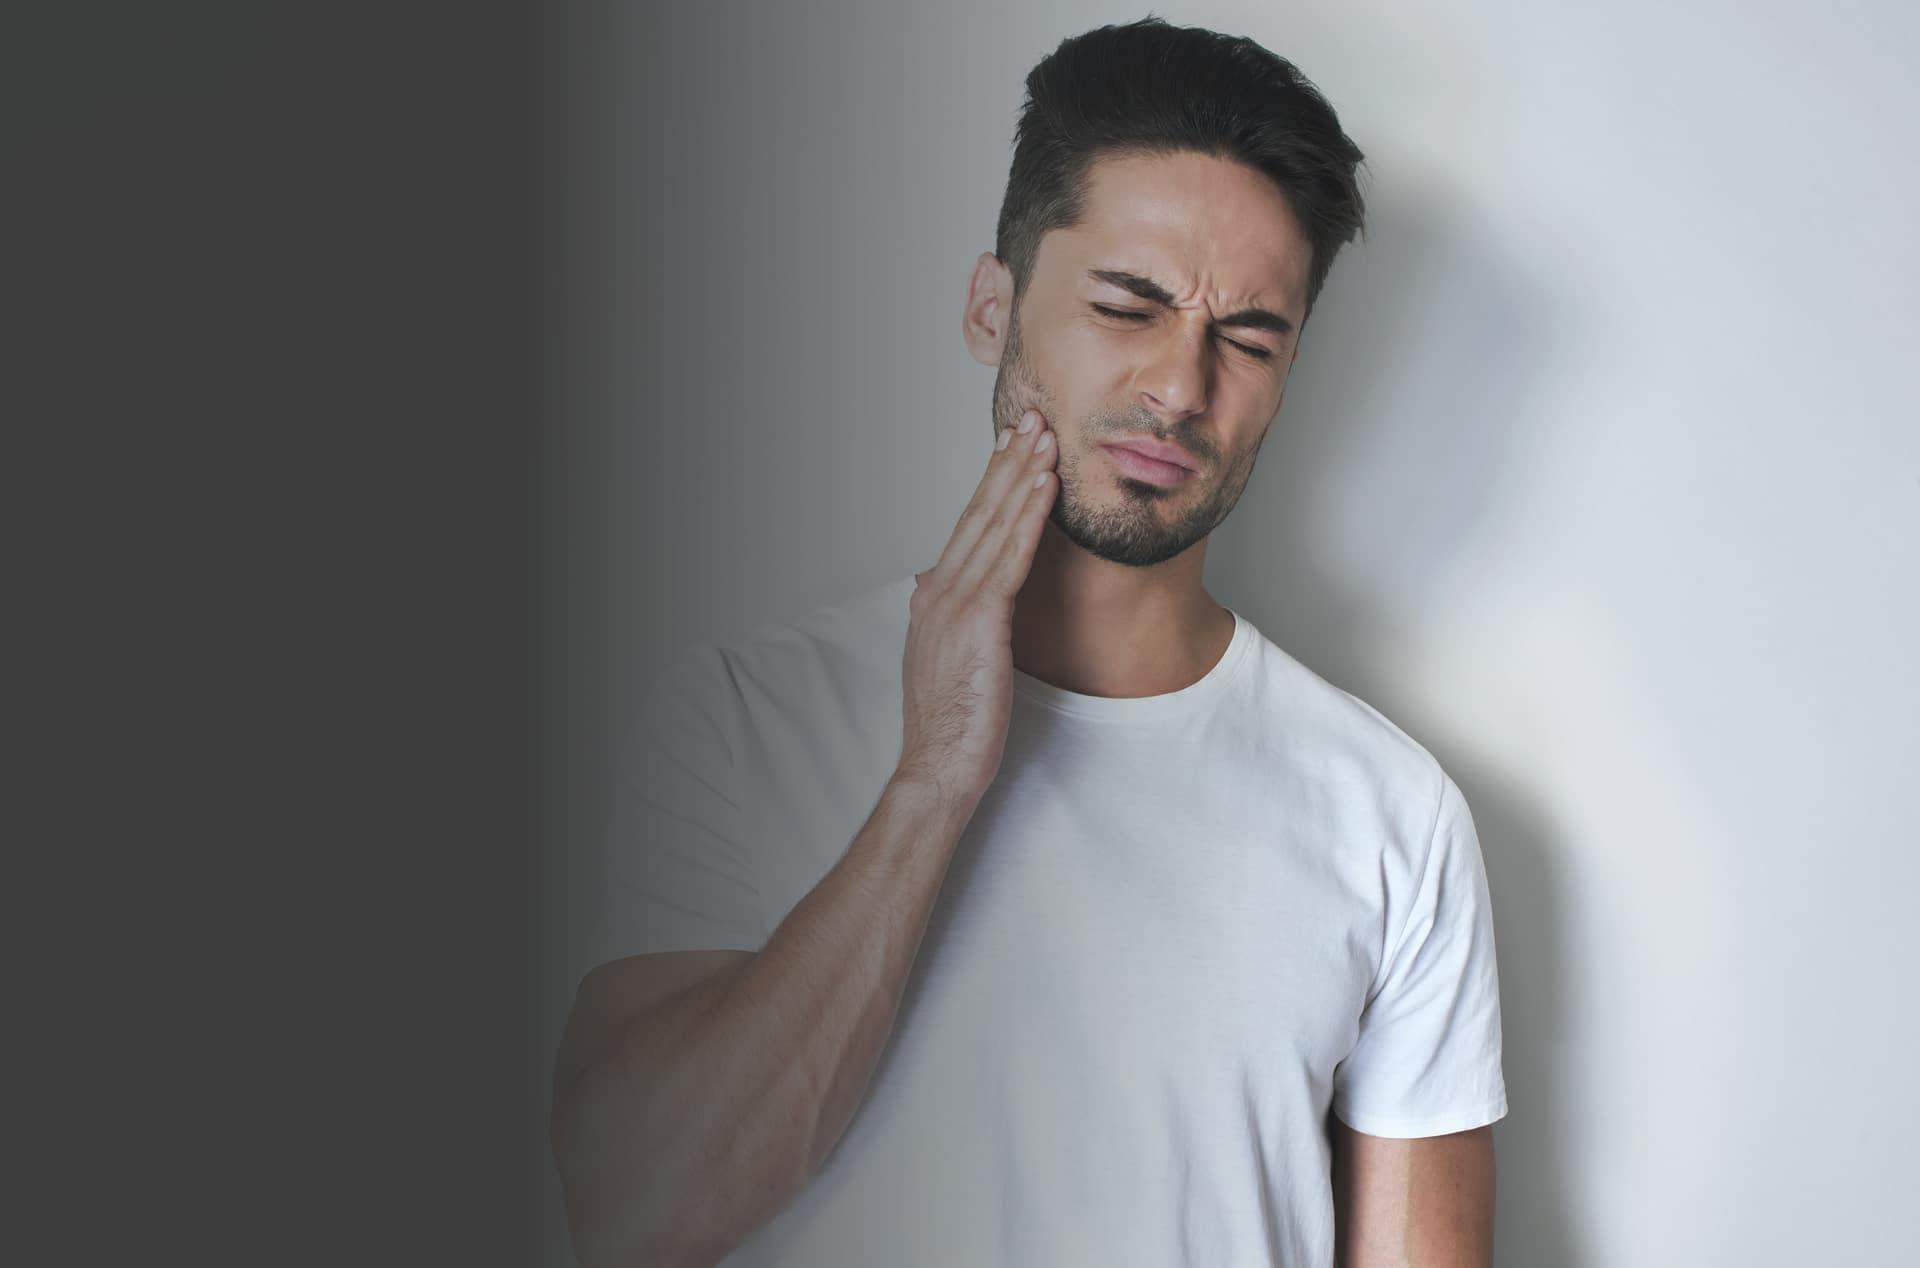 Man suffering with TMJ problems